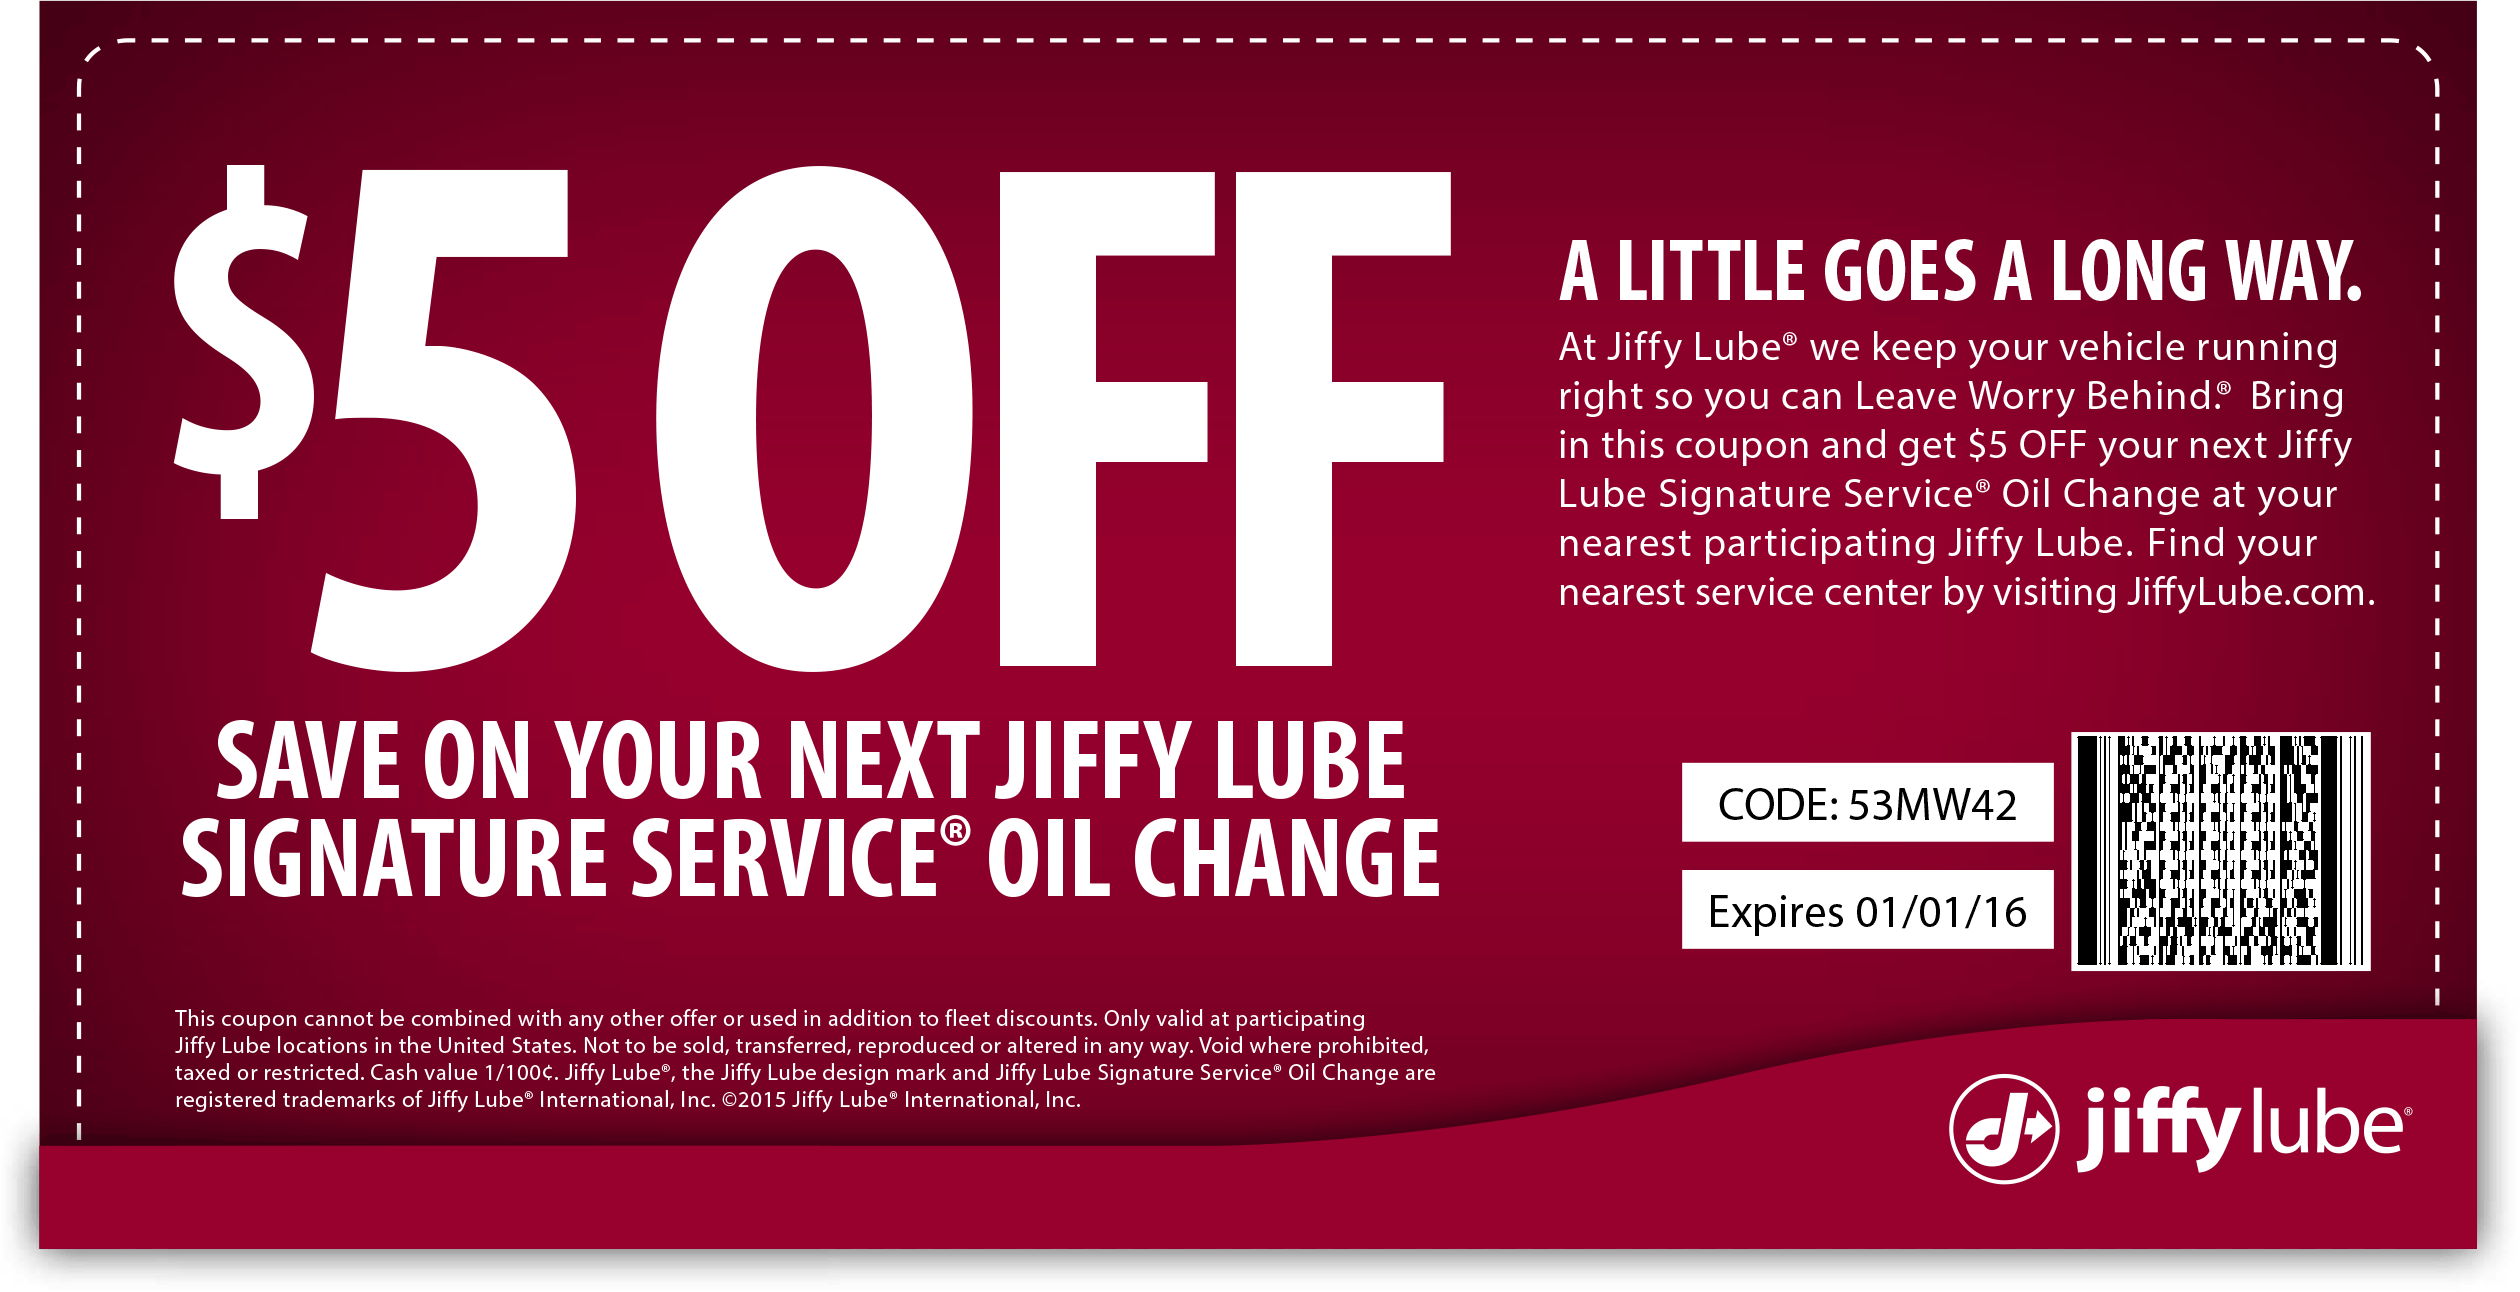 Jiffy Lube Coupon June 2017 $5 off an oil change at Jiffy Lube